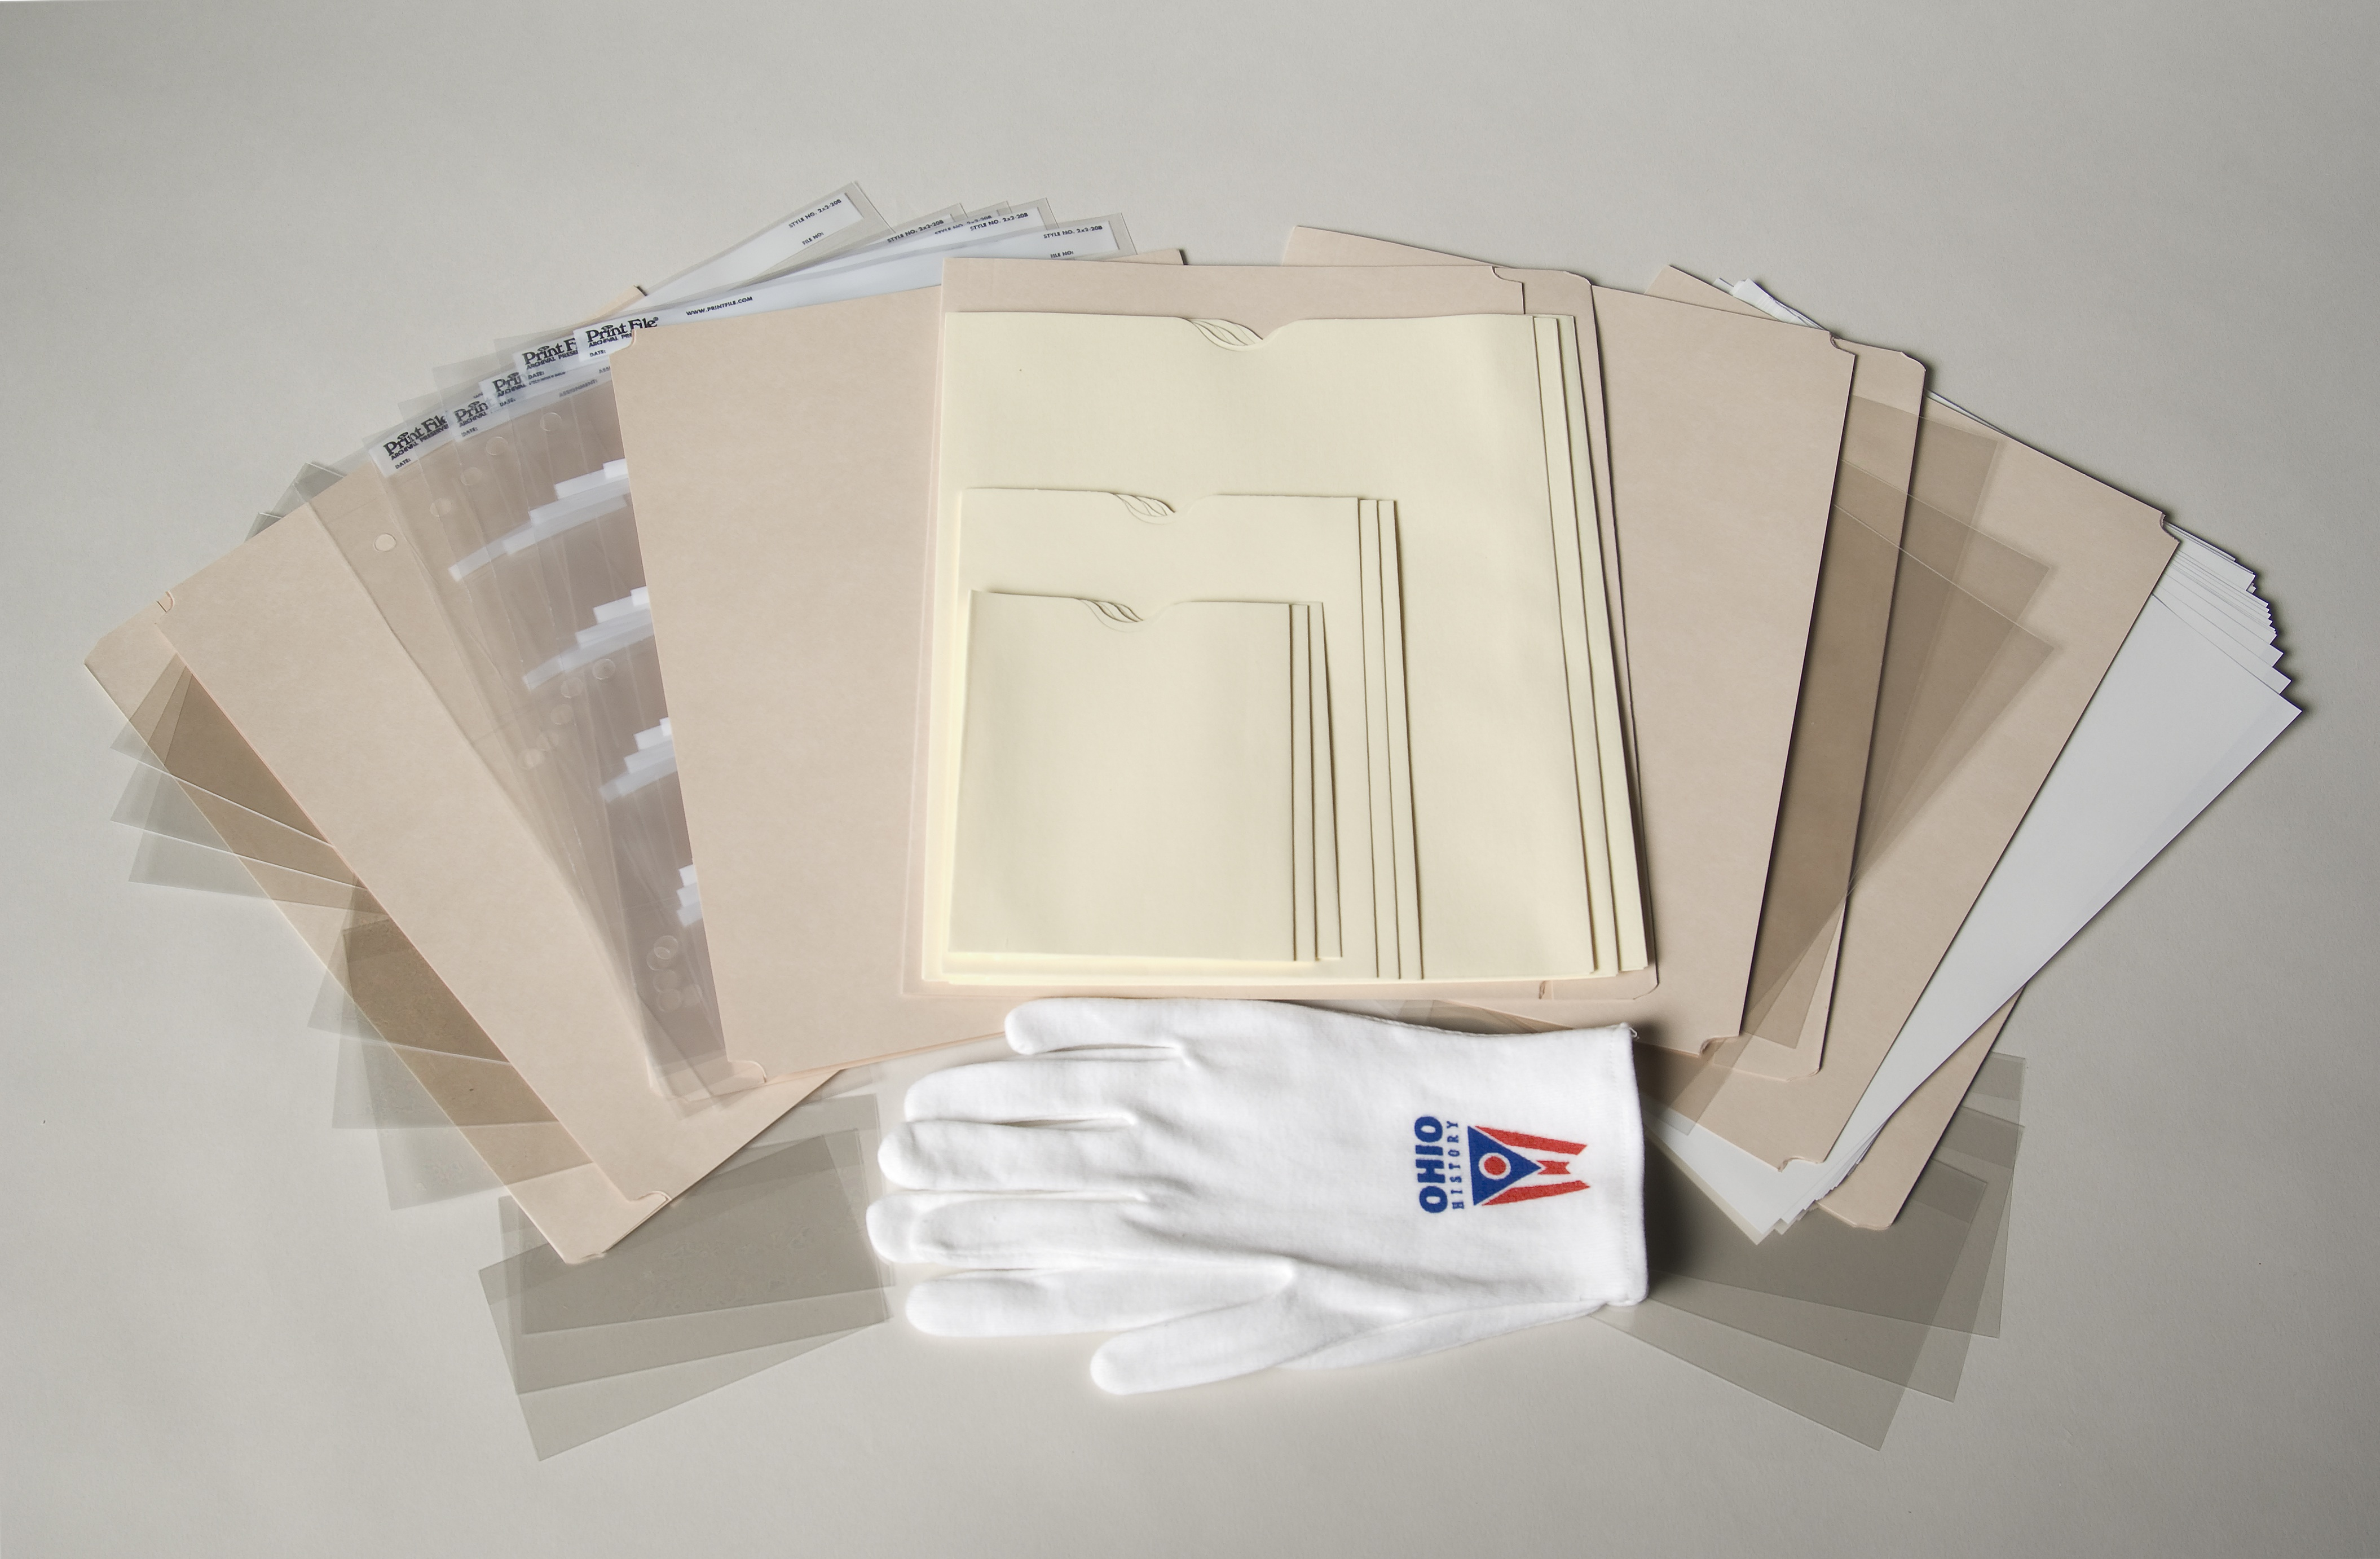 The Family Archival Kit is available for $37.50 at the new Ohio History Store. The kit includes an assortment of the actual archival products that the Ohio Historical Society Collections staff uses to store documents, slides and small paper objects.